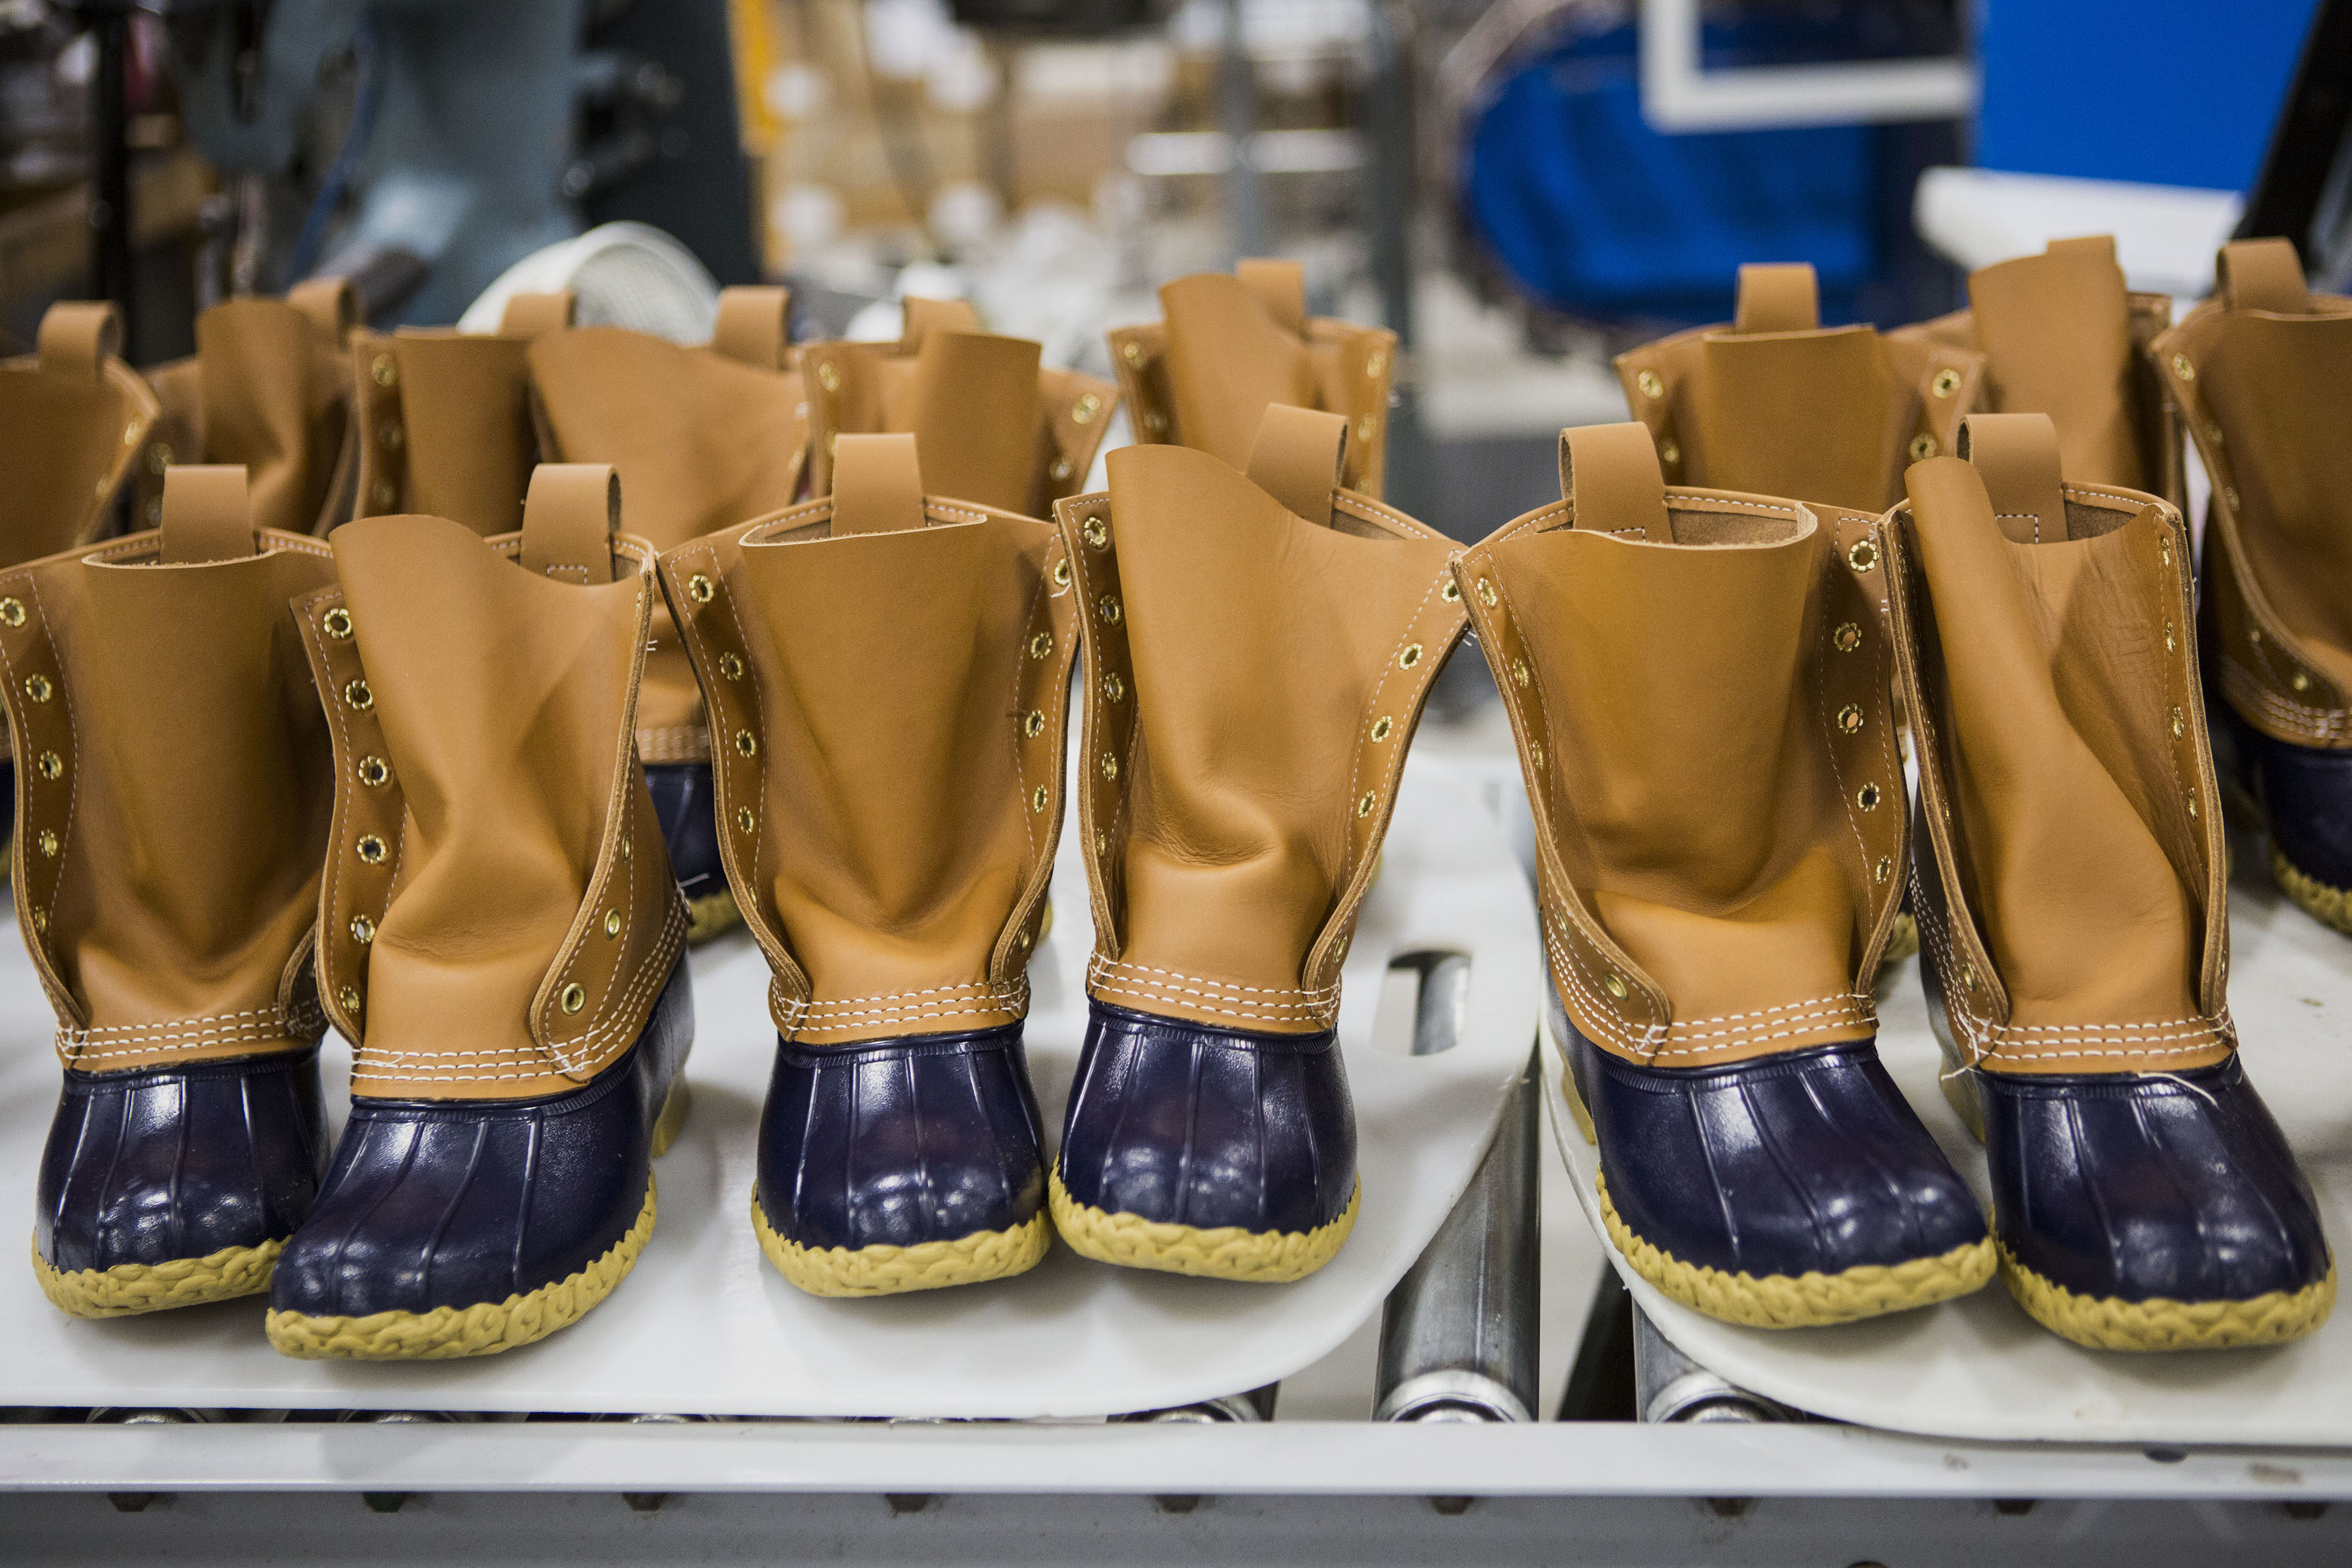 Finished boots sit on a conveyor belt before being packaged at the L.L. Bean Inc. manufacturing facility in Brunswick, Maine on Sept. 9, 2015.